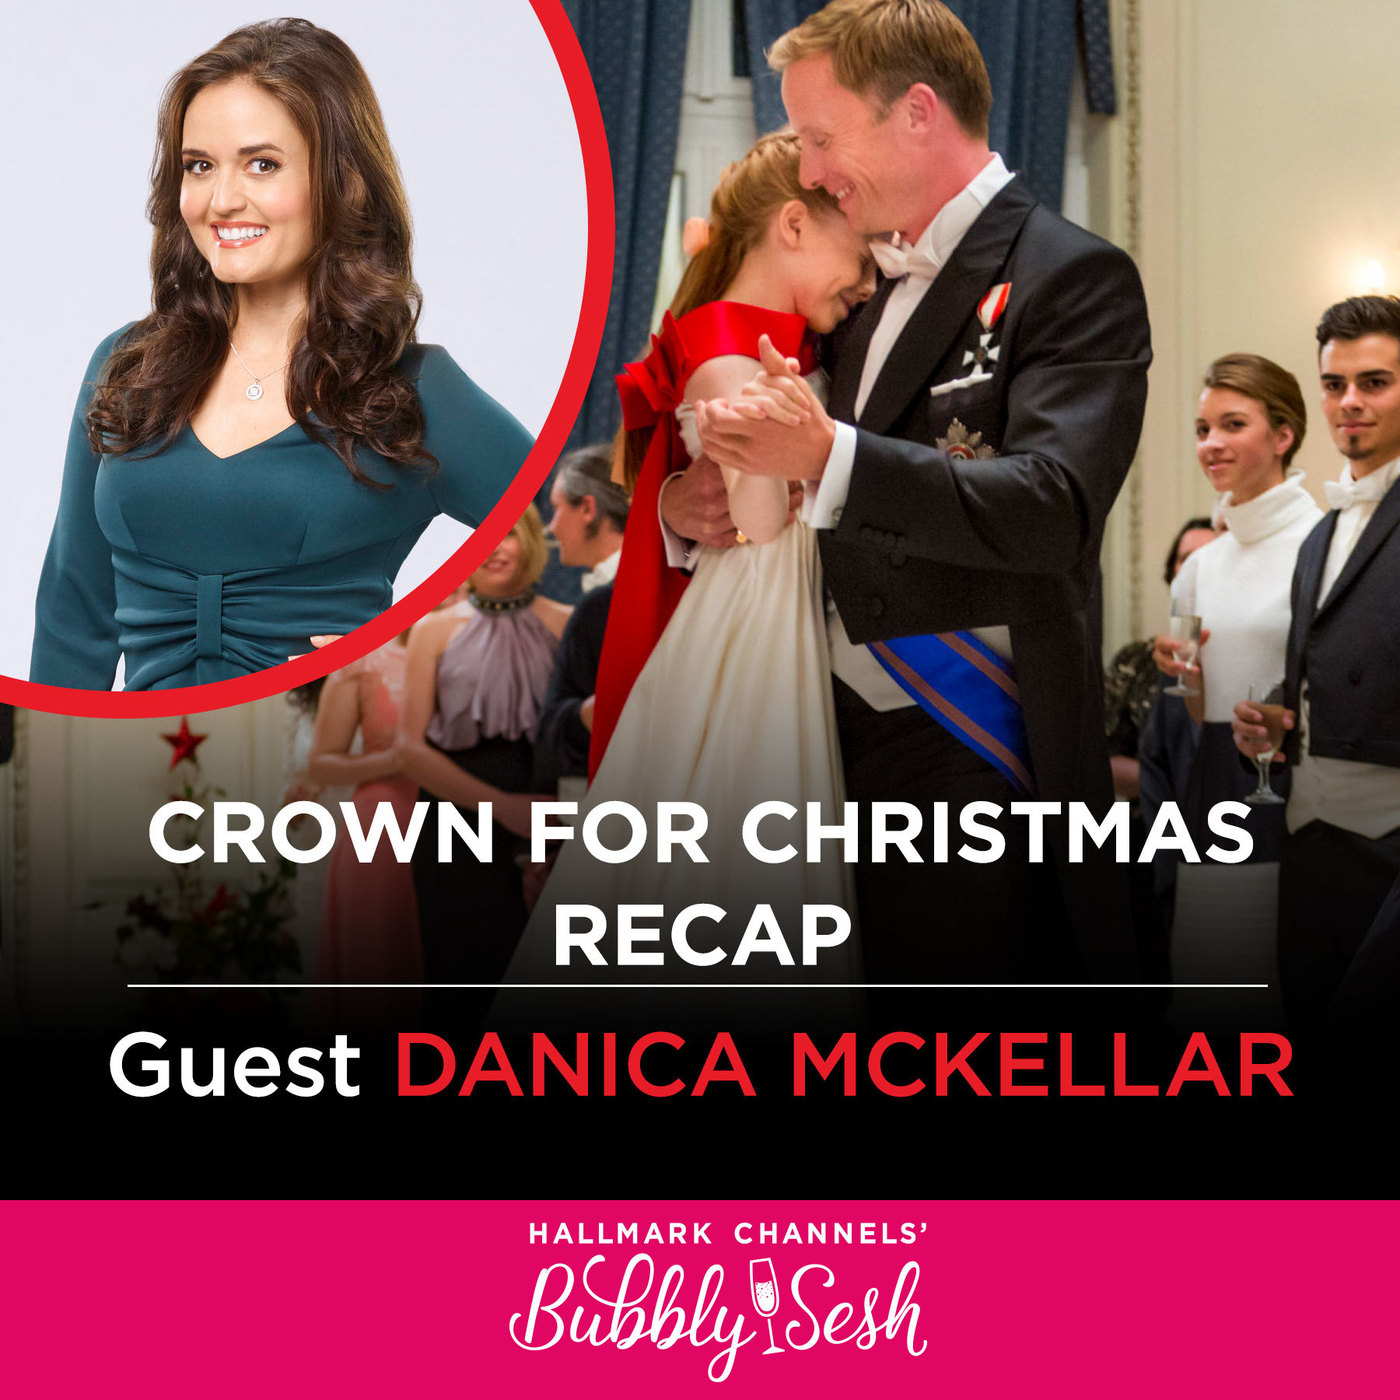 Crown for Christmas Recap with Guest Danica McKellar